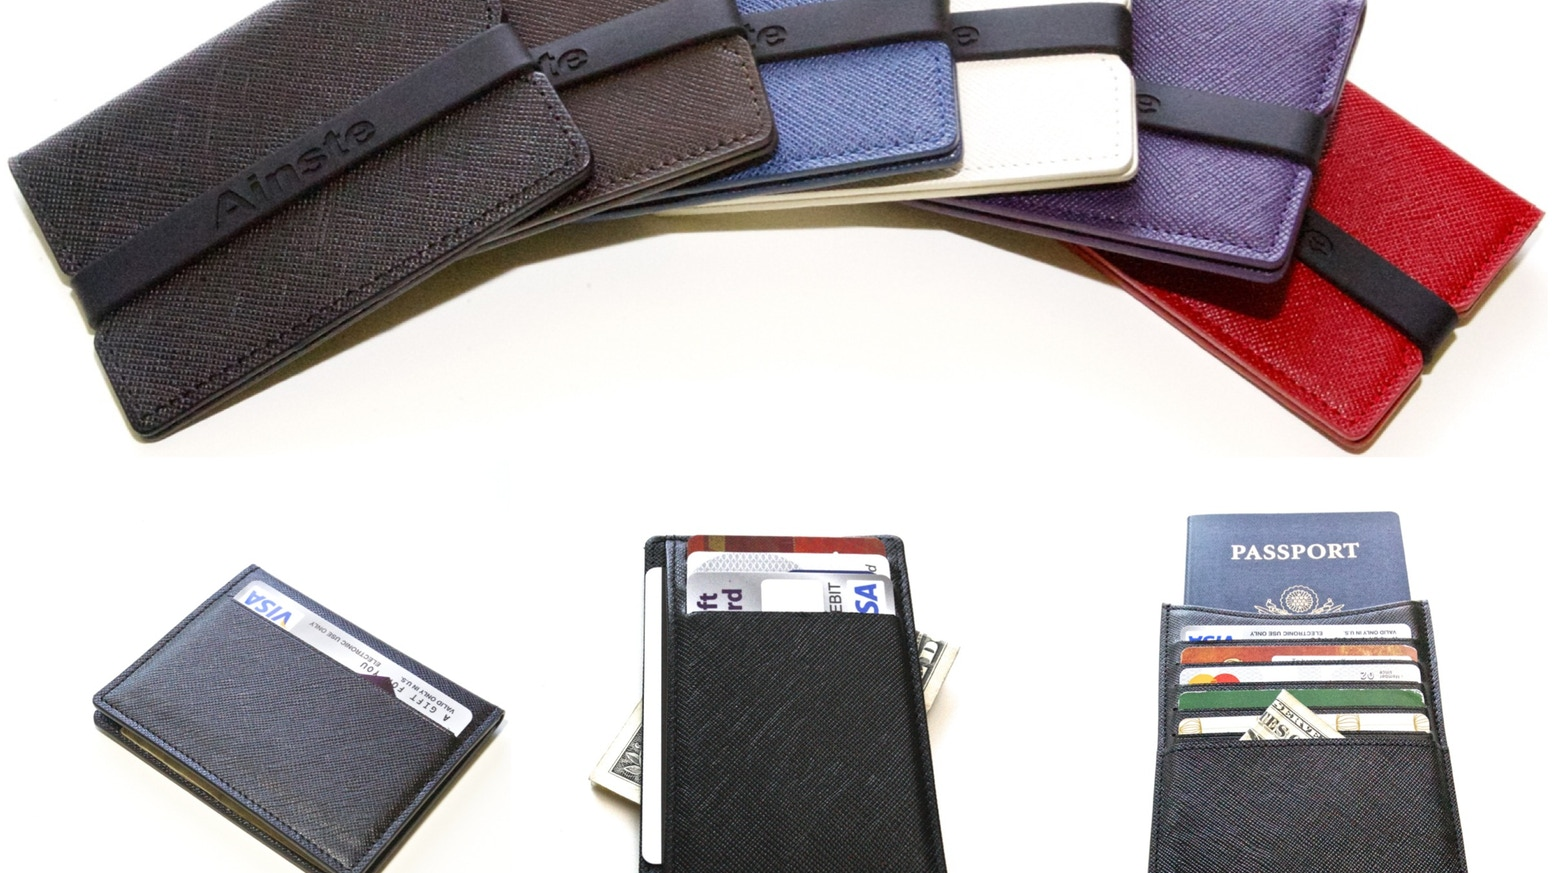 Ainste New Designs of Thin Front Pocket Wallets.The Best Slim Compact Leather Wallets with RFID Protection.